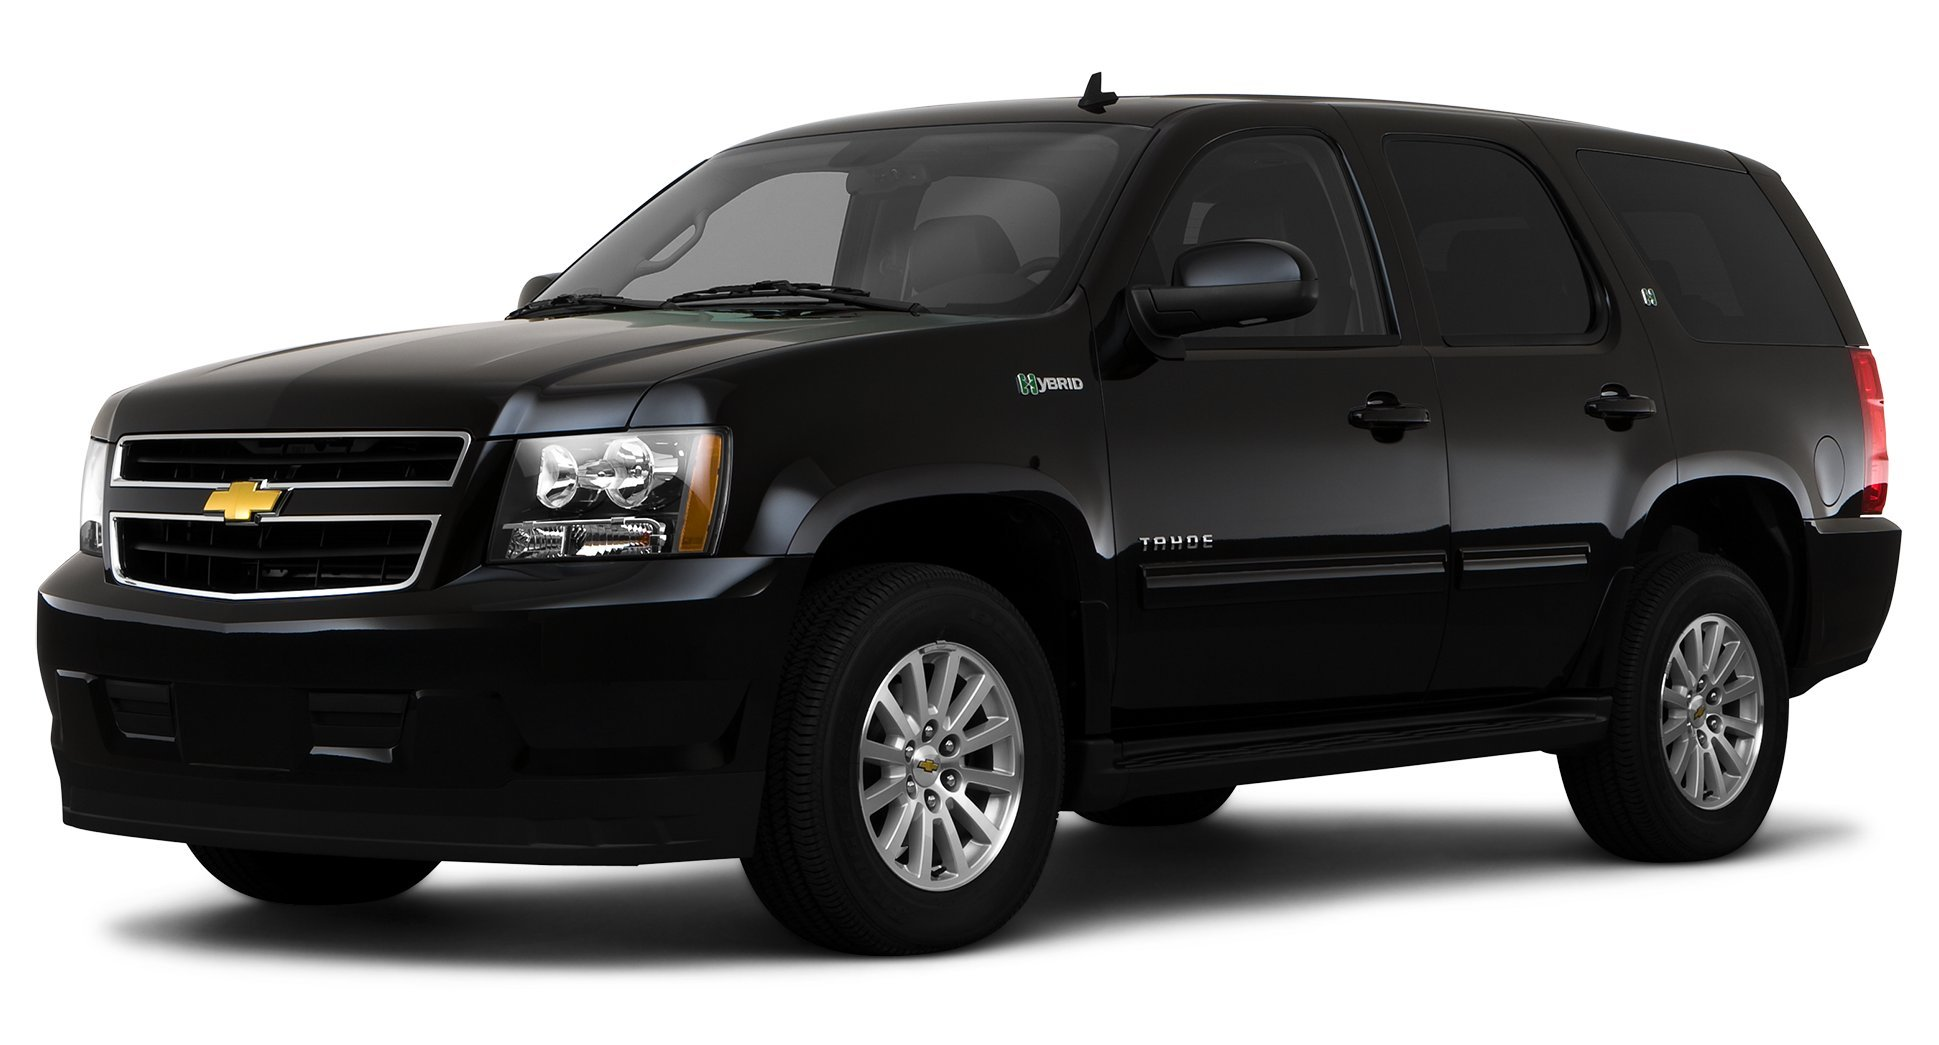 2010 chevrolet tahoe reviews images and specs vehicles. Black Bedroom Furniture Sets. Home Design Ideas